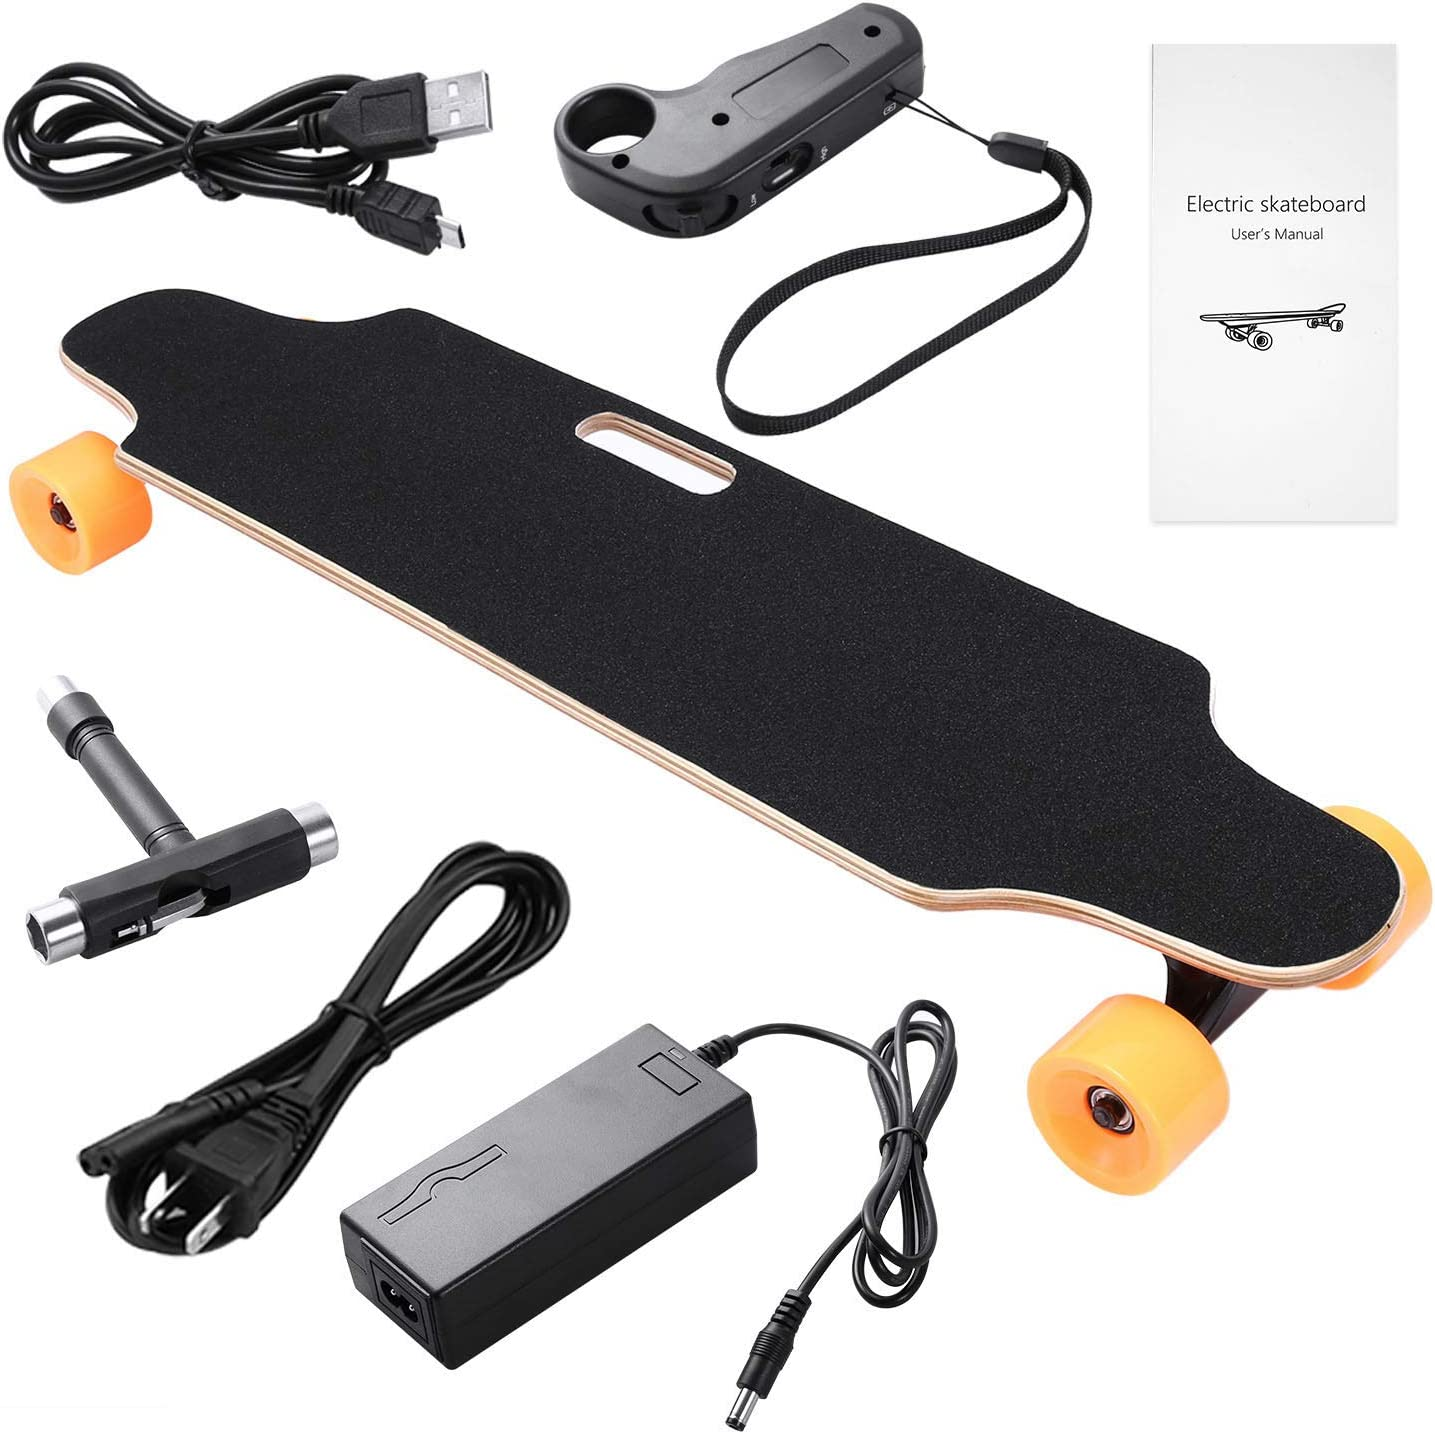 US Stock 7 Layers Maple Longboard 10 Miles Range 20Km//h Top Speed OppsDecor Electric Skateboard with Wireless Remote Control